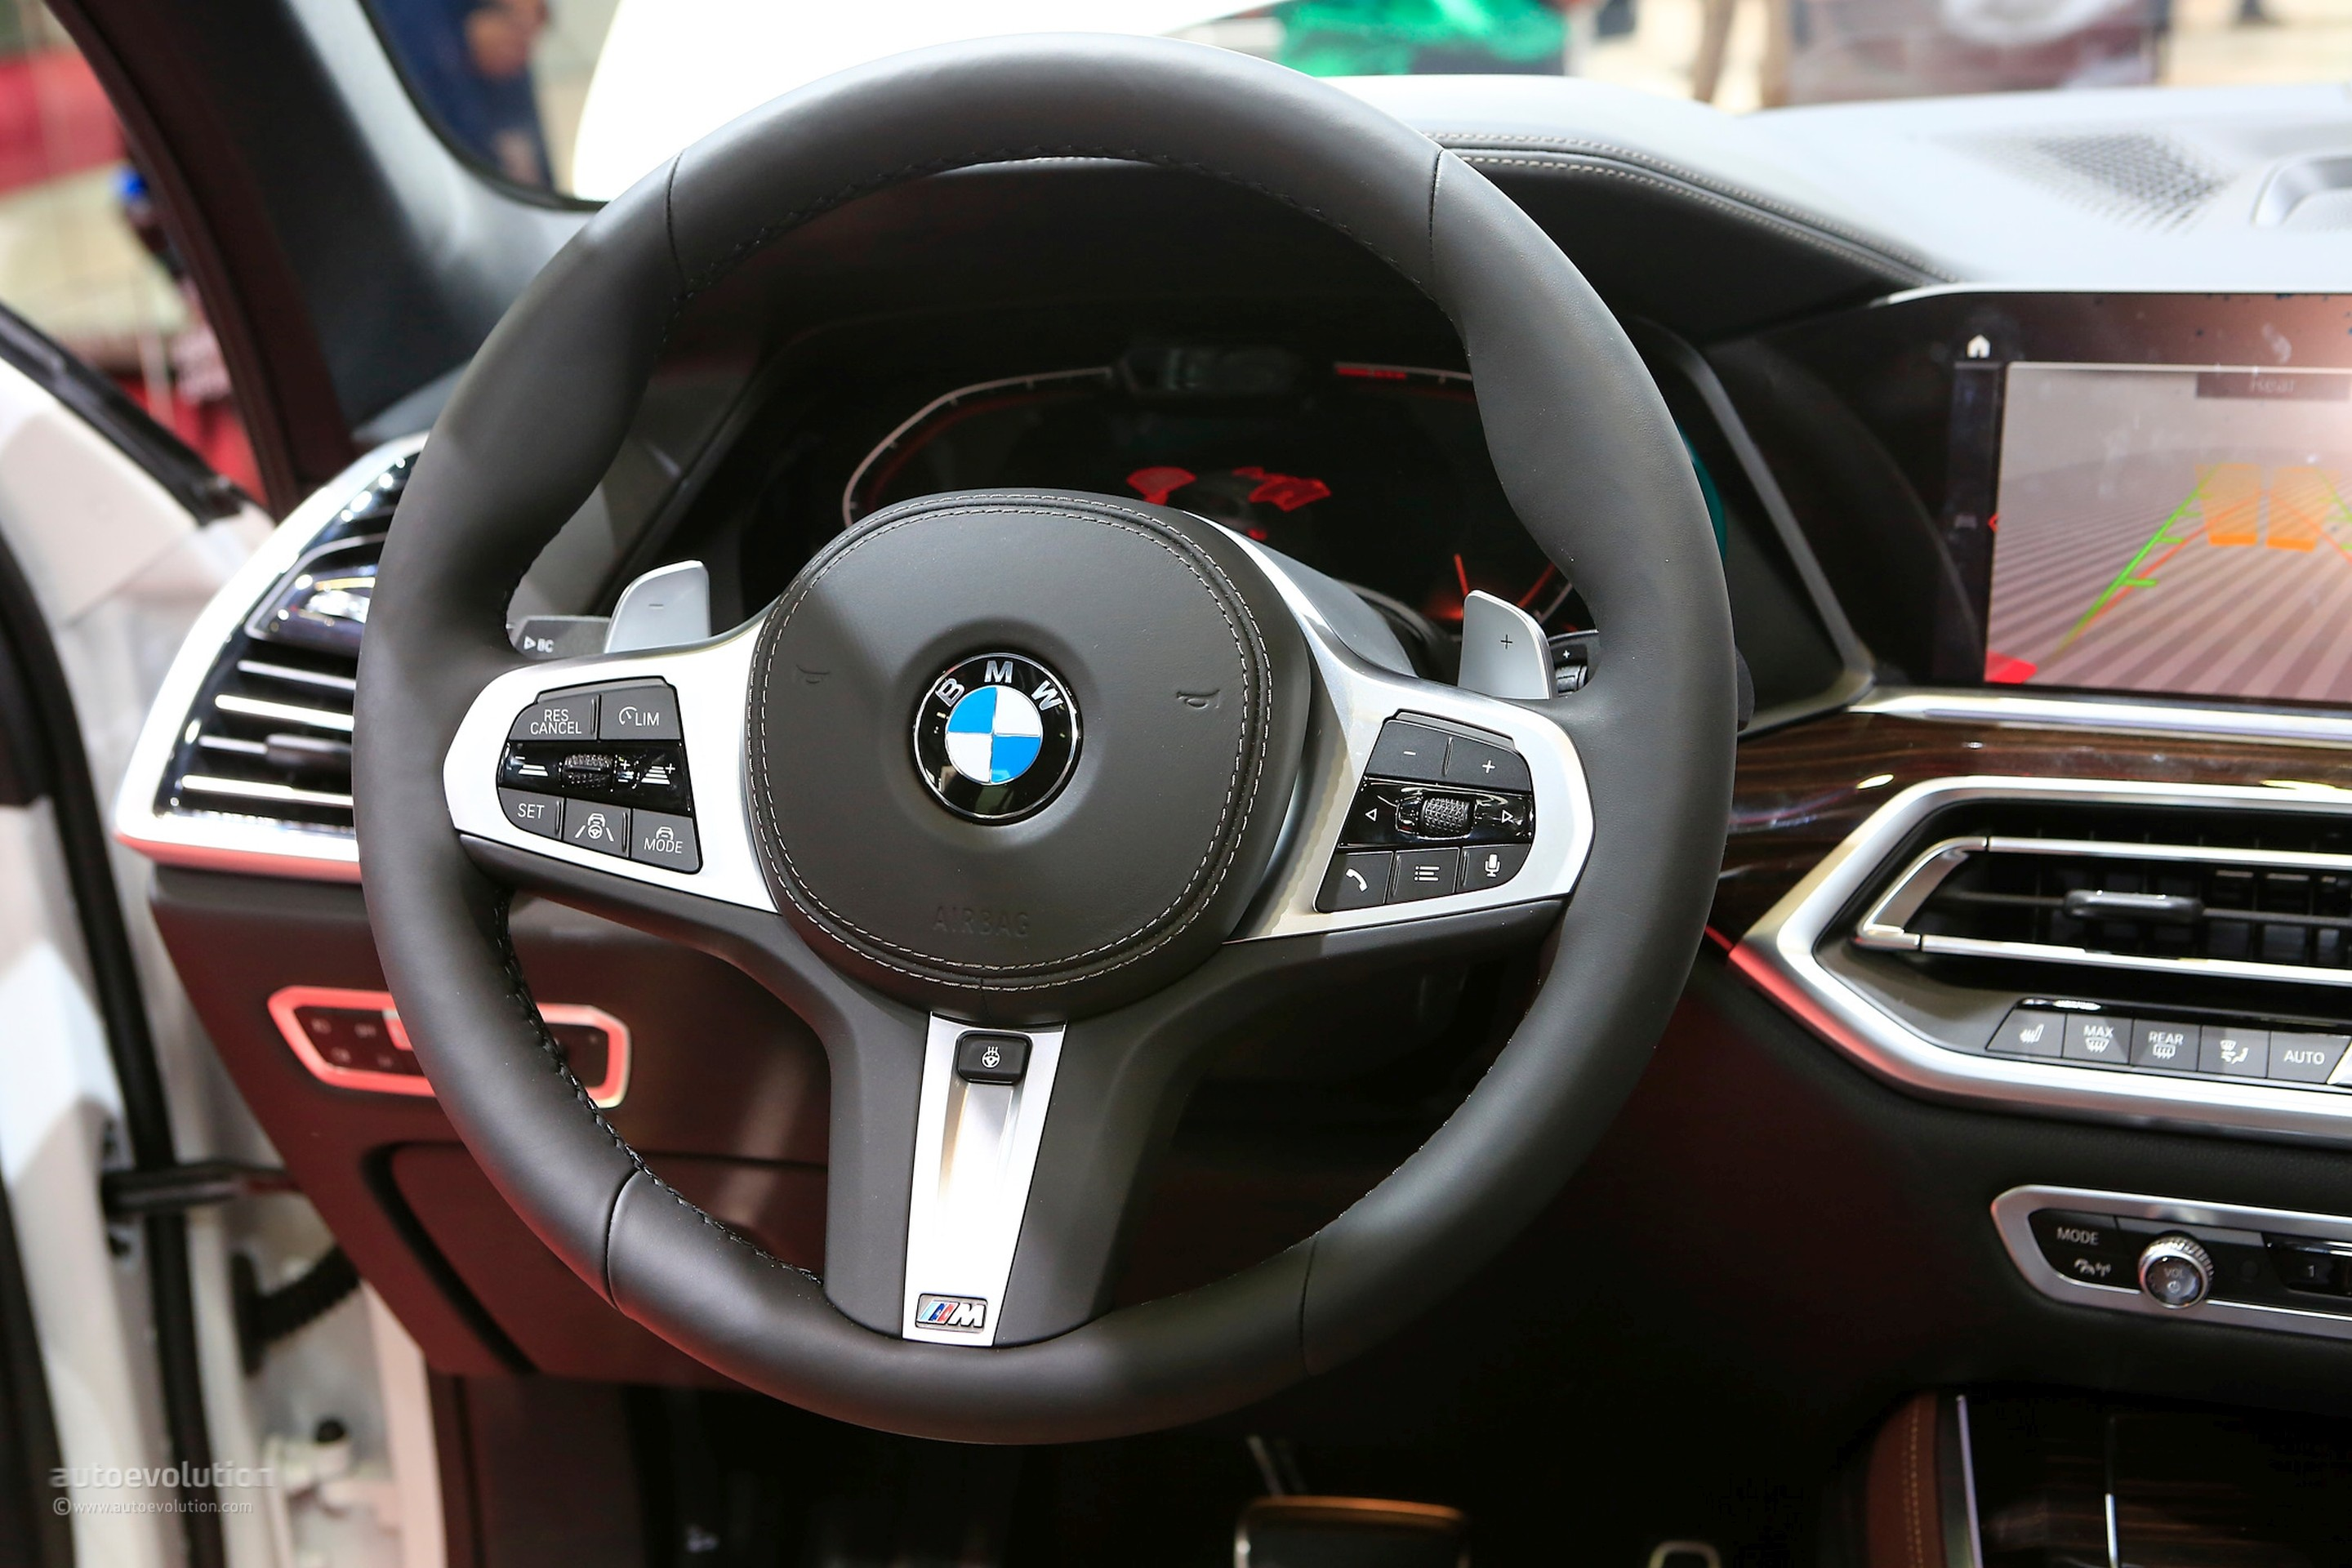 7 Seater Bmw - 2019-2020 New Upcoming Cars by